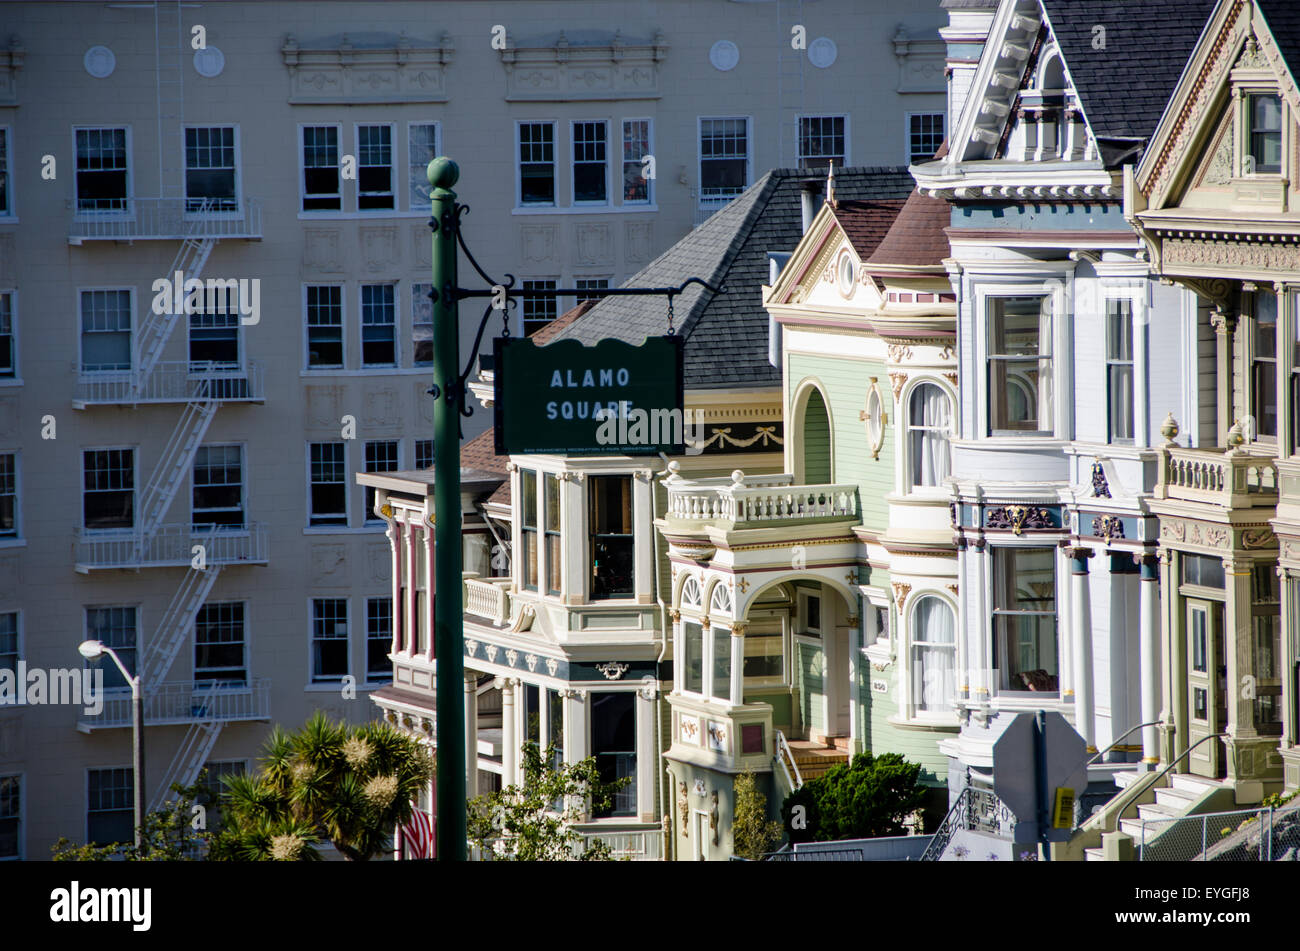 Ruins and Landmarks of the City with an Ancient Soul - San Francisco - Stock Image